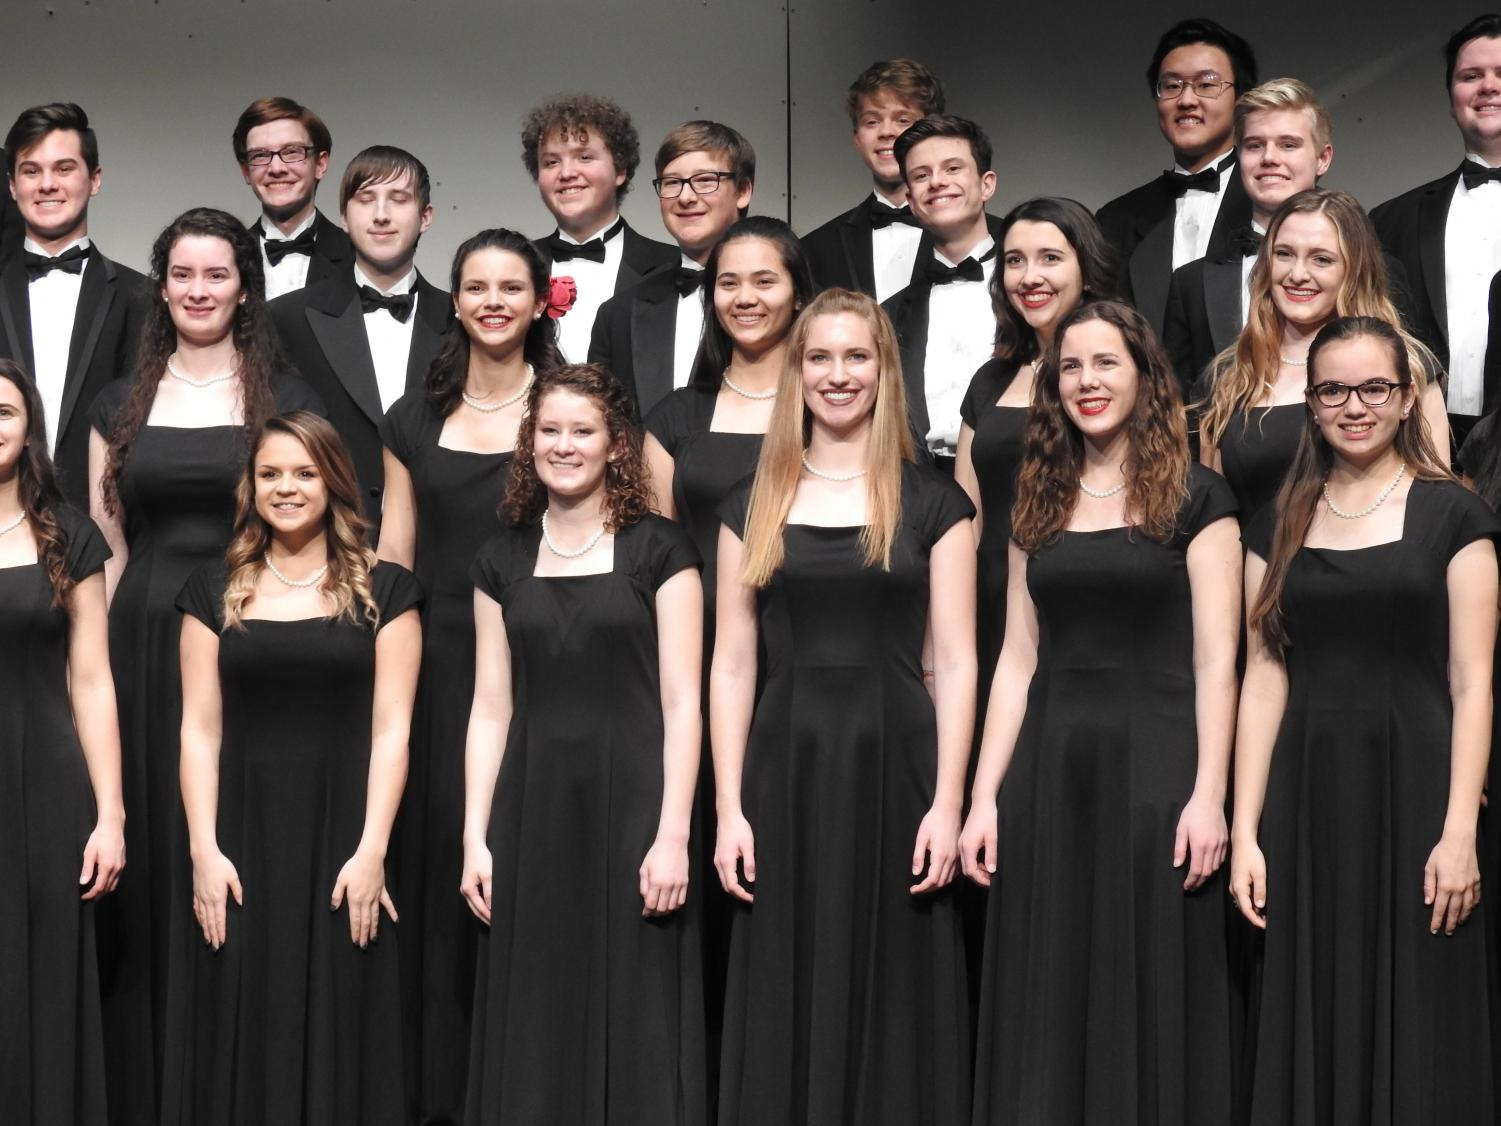 Some members of the 2018-19 PV Chamber Choir, standing stationary as they sing at a concert.